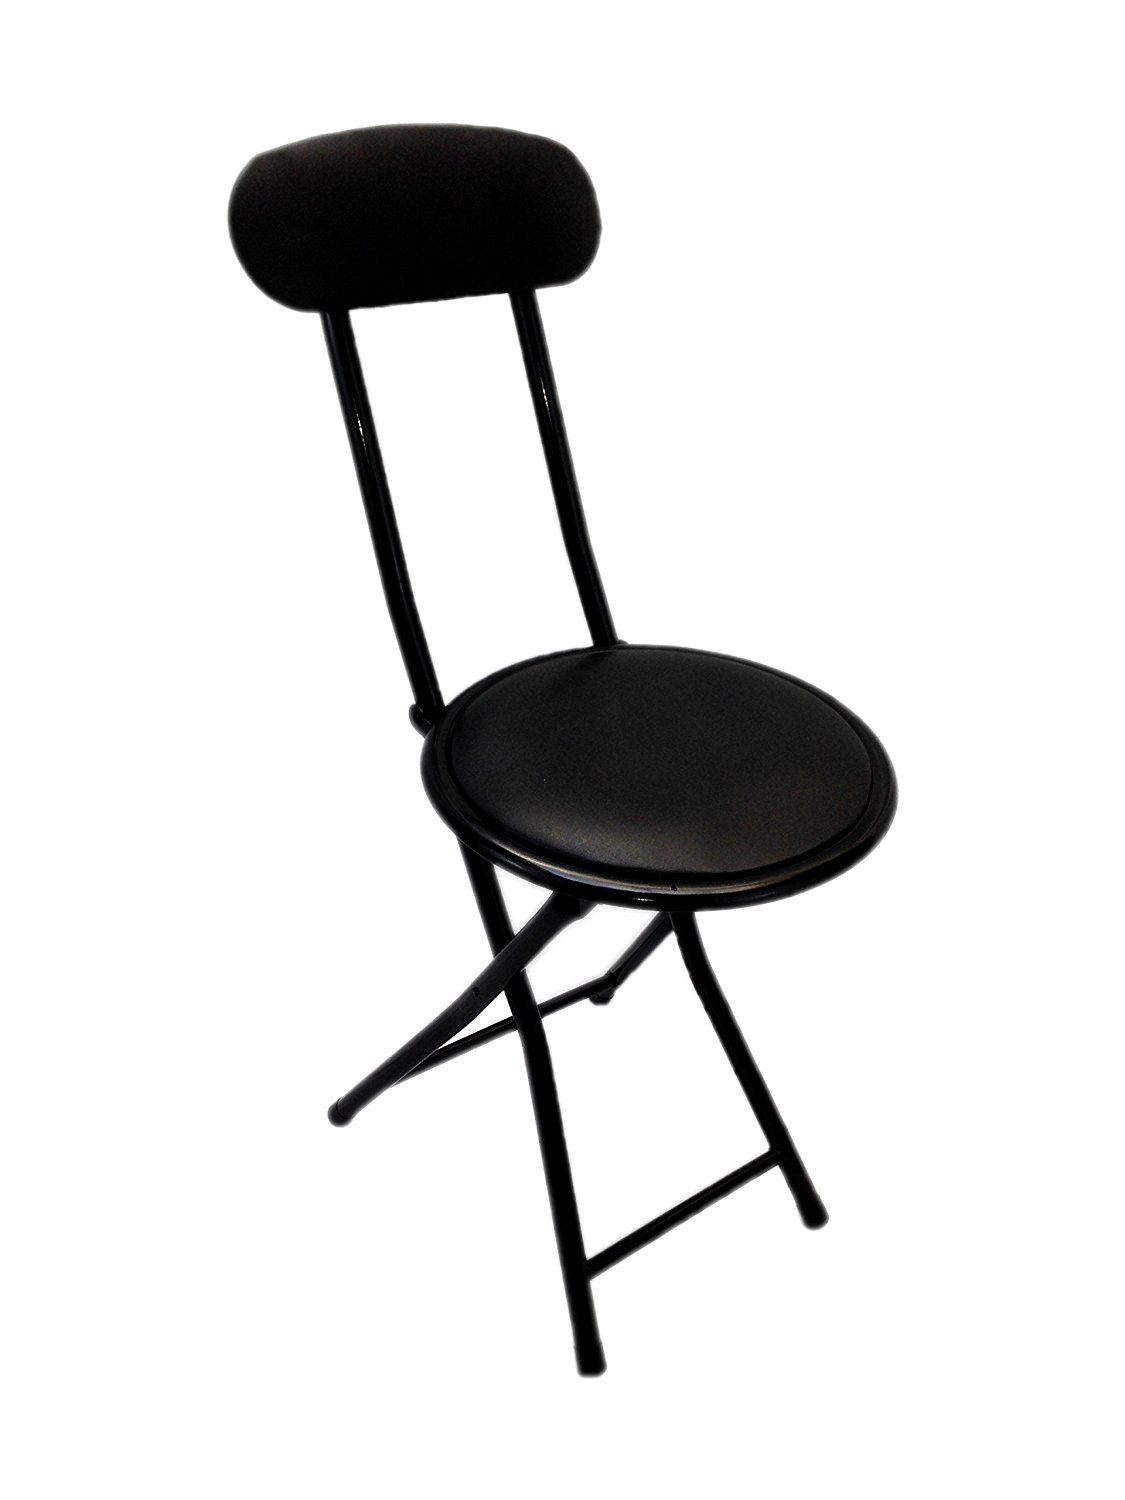 Ethels Home Goods E1206 Portable Small Black Folding Chair Padded With Lock Mechanism Easy Storage And Stackable